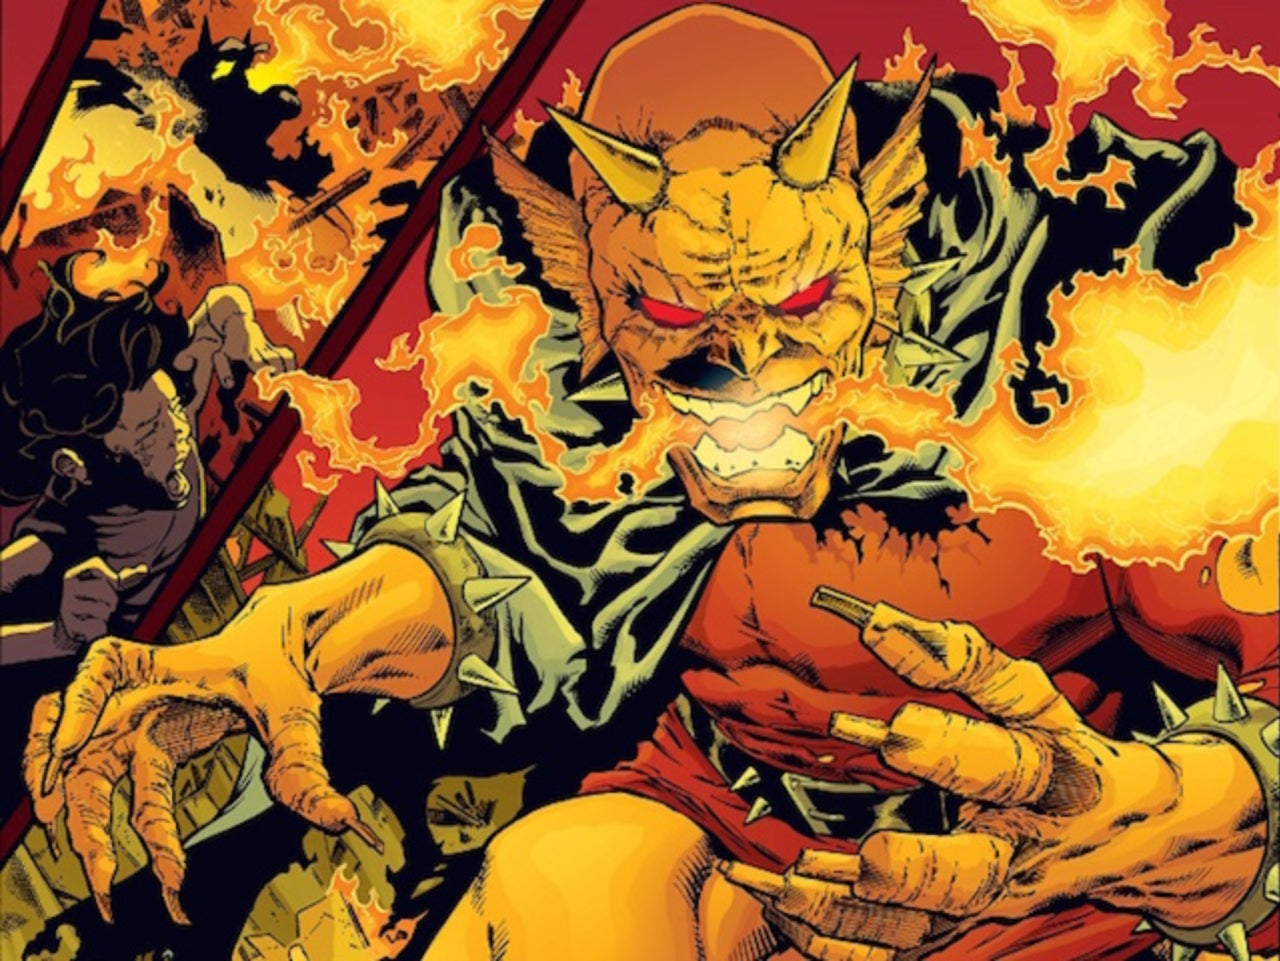 Search for a demon in hell [Shadowpact] Etrigan-the-demon-featured-1015648-1280x0